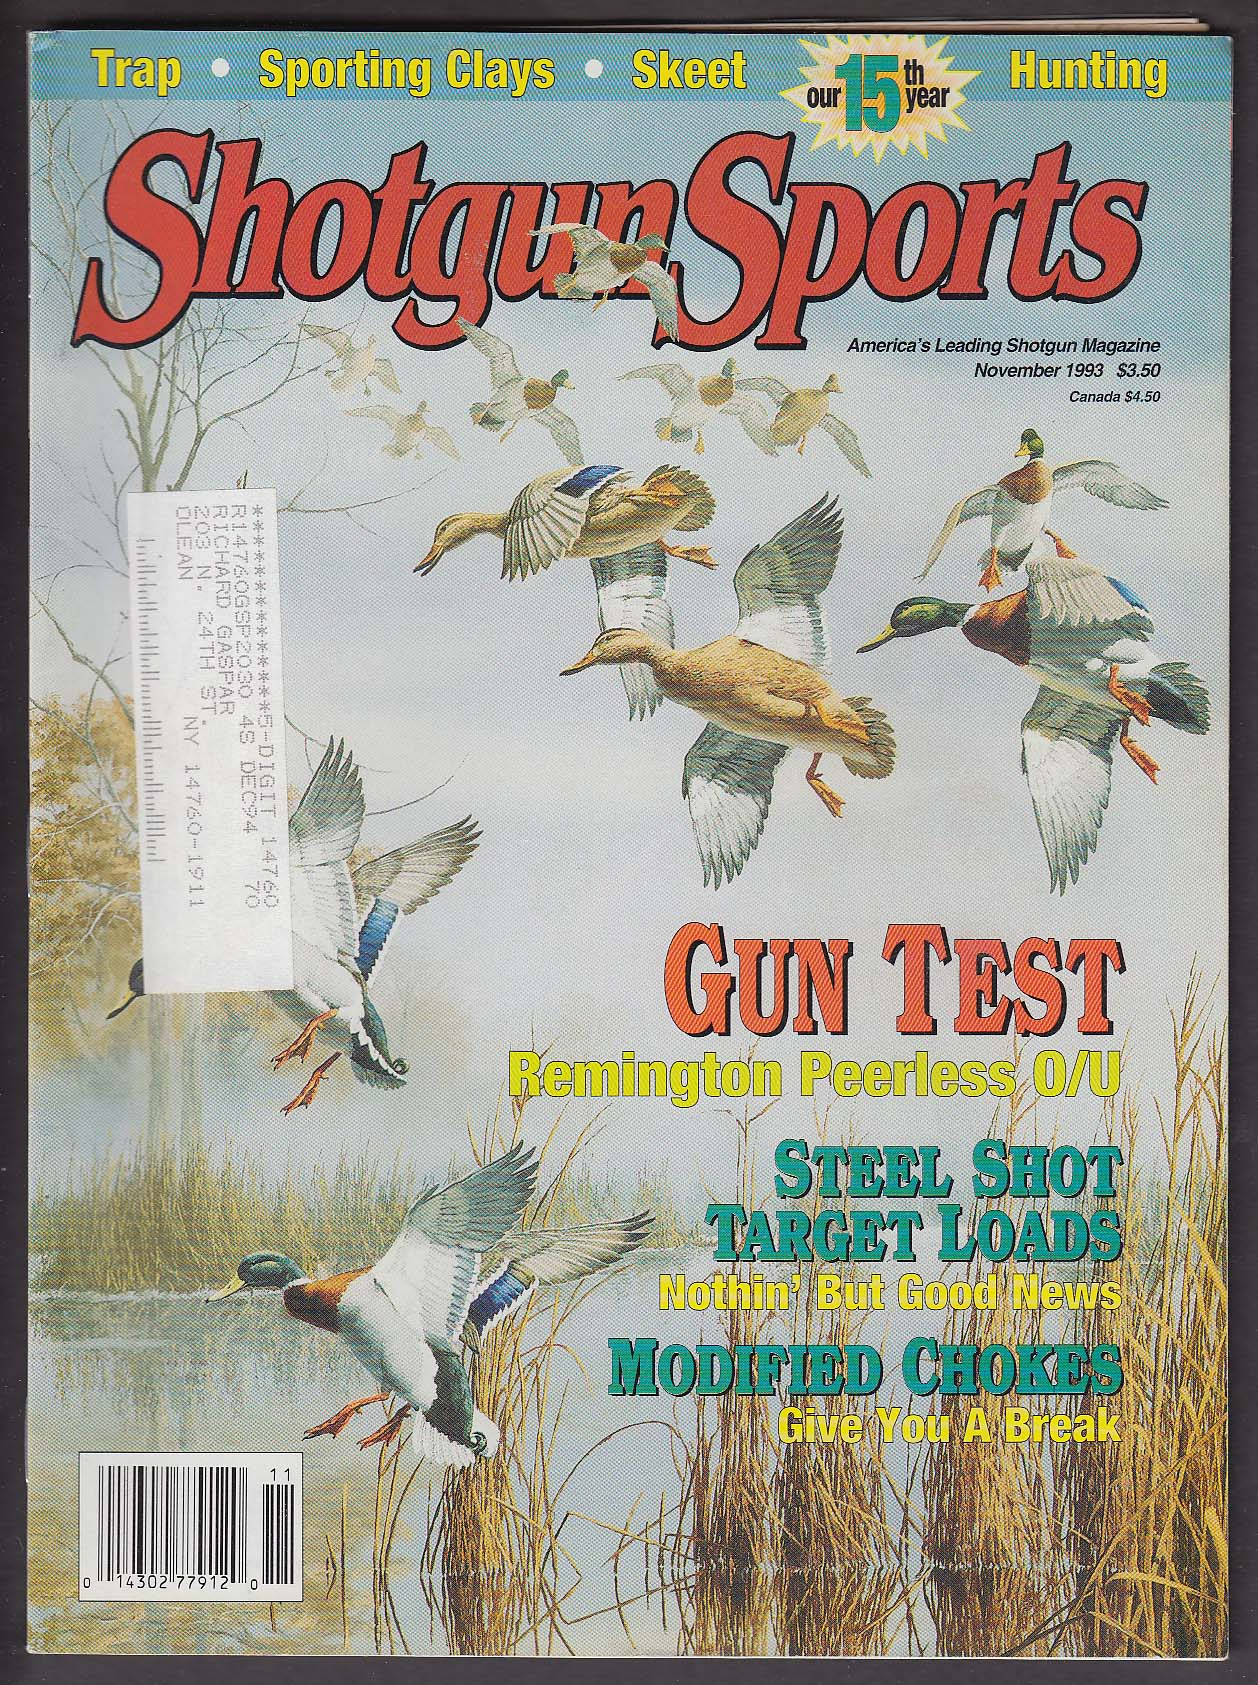 SHOTGUN SPORTS 24 Gauge O/U Modified Choke Turkey Loads Gene